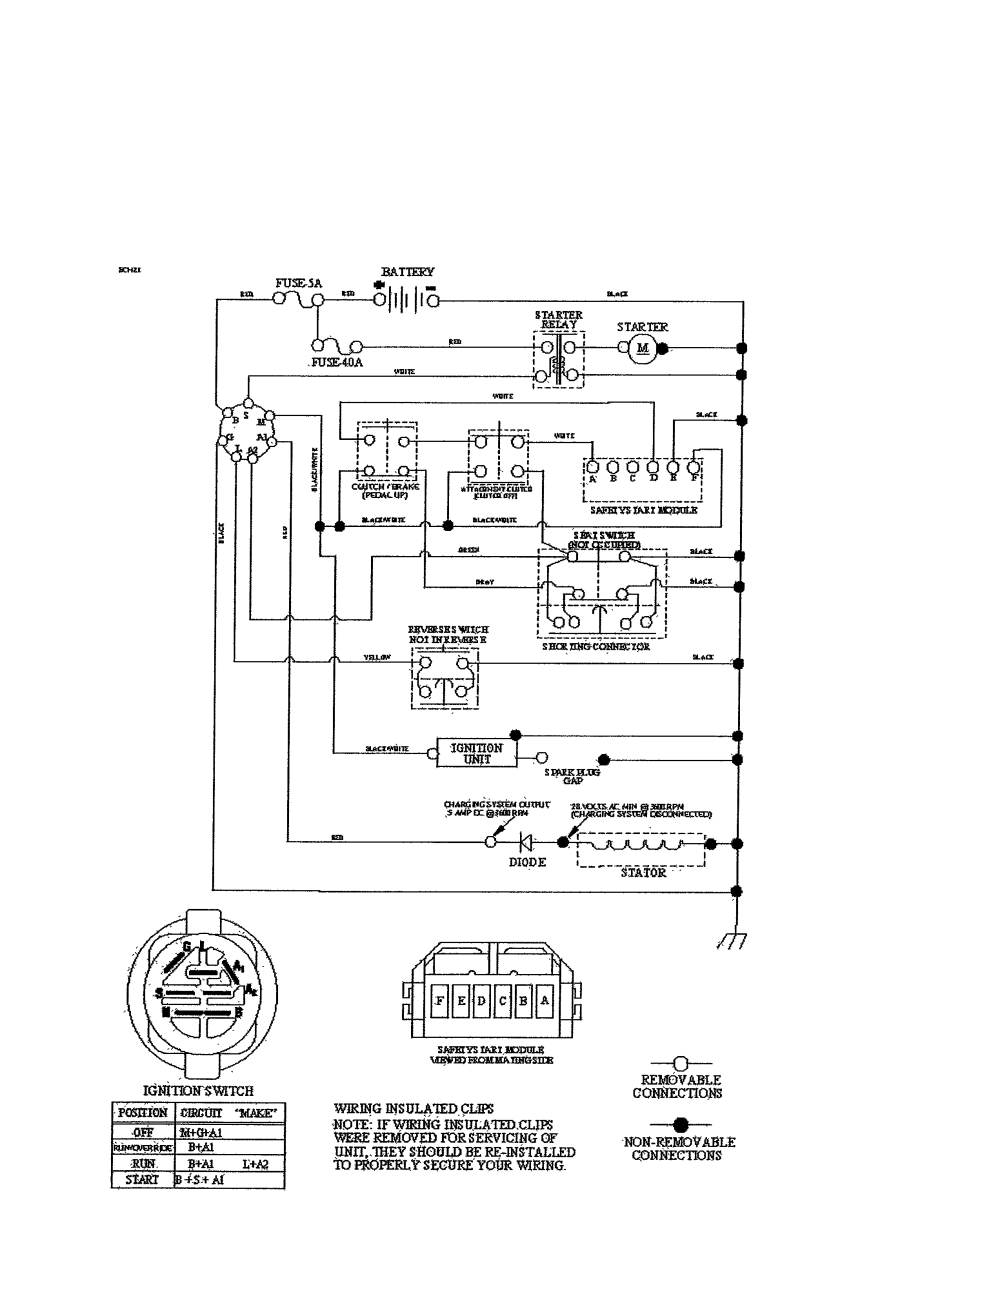 medium resolution of diagram washer ge schematic ghwp1000m0ww trusted wiring diagram general electric washer schematic model whdsr316g1ww